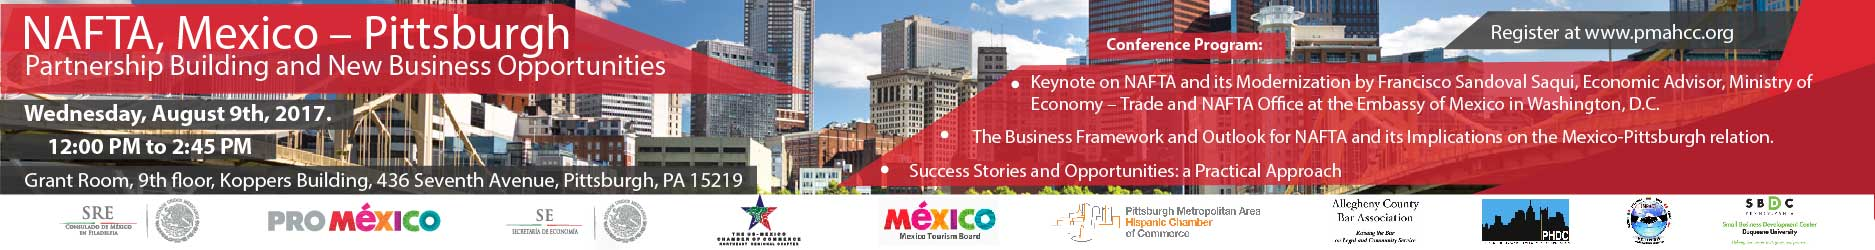 NAFTA & Mexico-Pittsburgh Partnership Building and New Business Opportunities